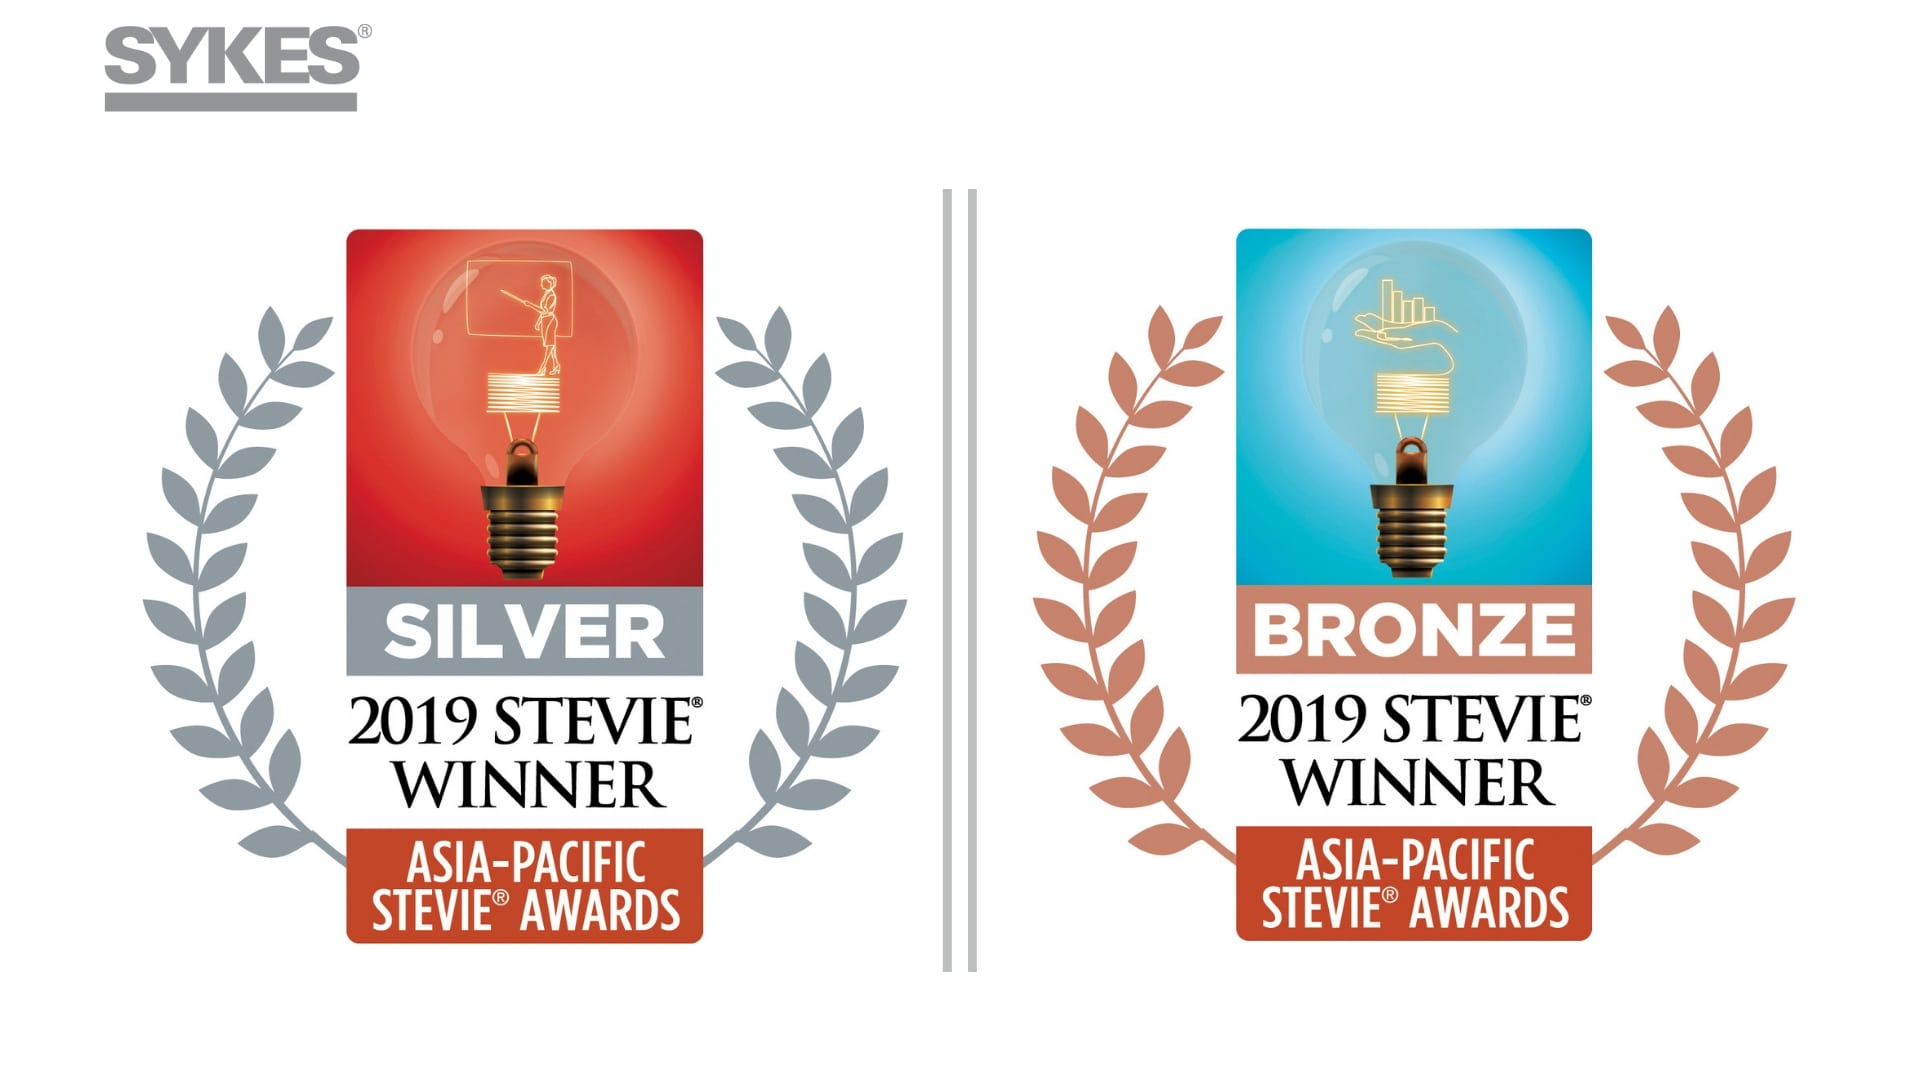 SYKES Wins Two Asia-Pacific Stevie Awards